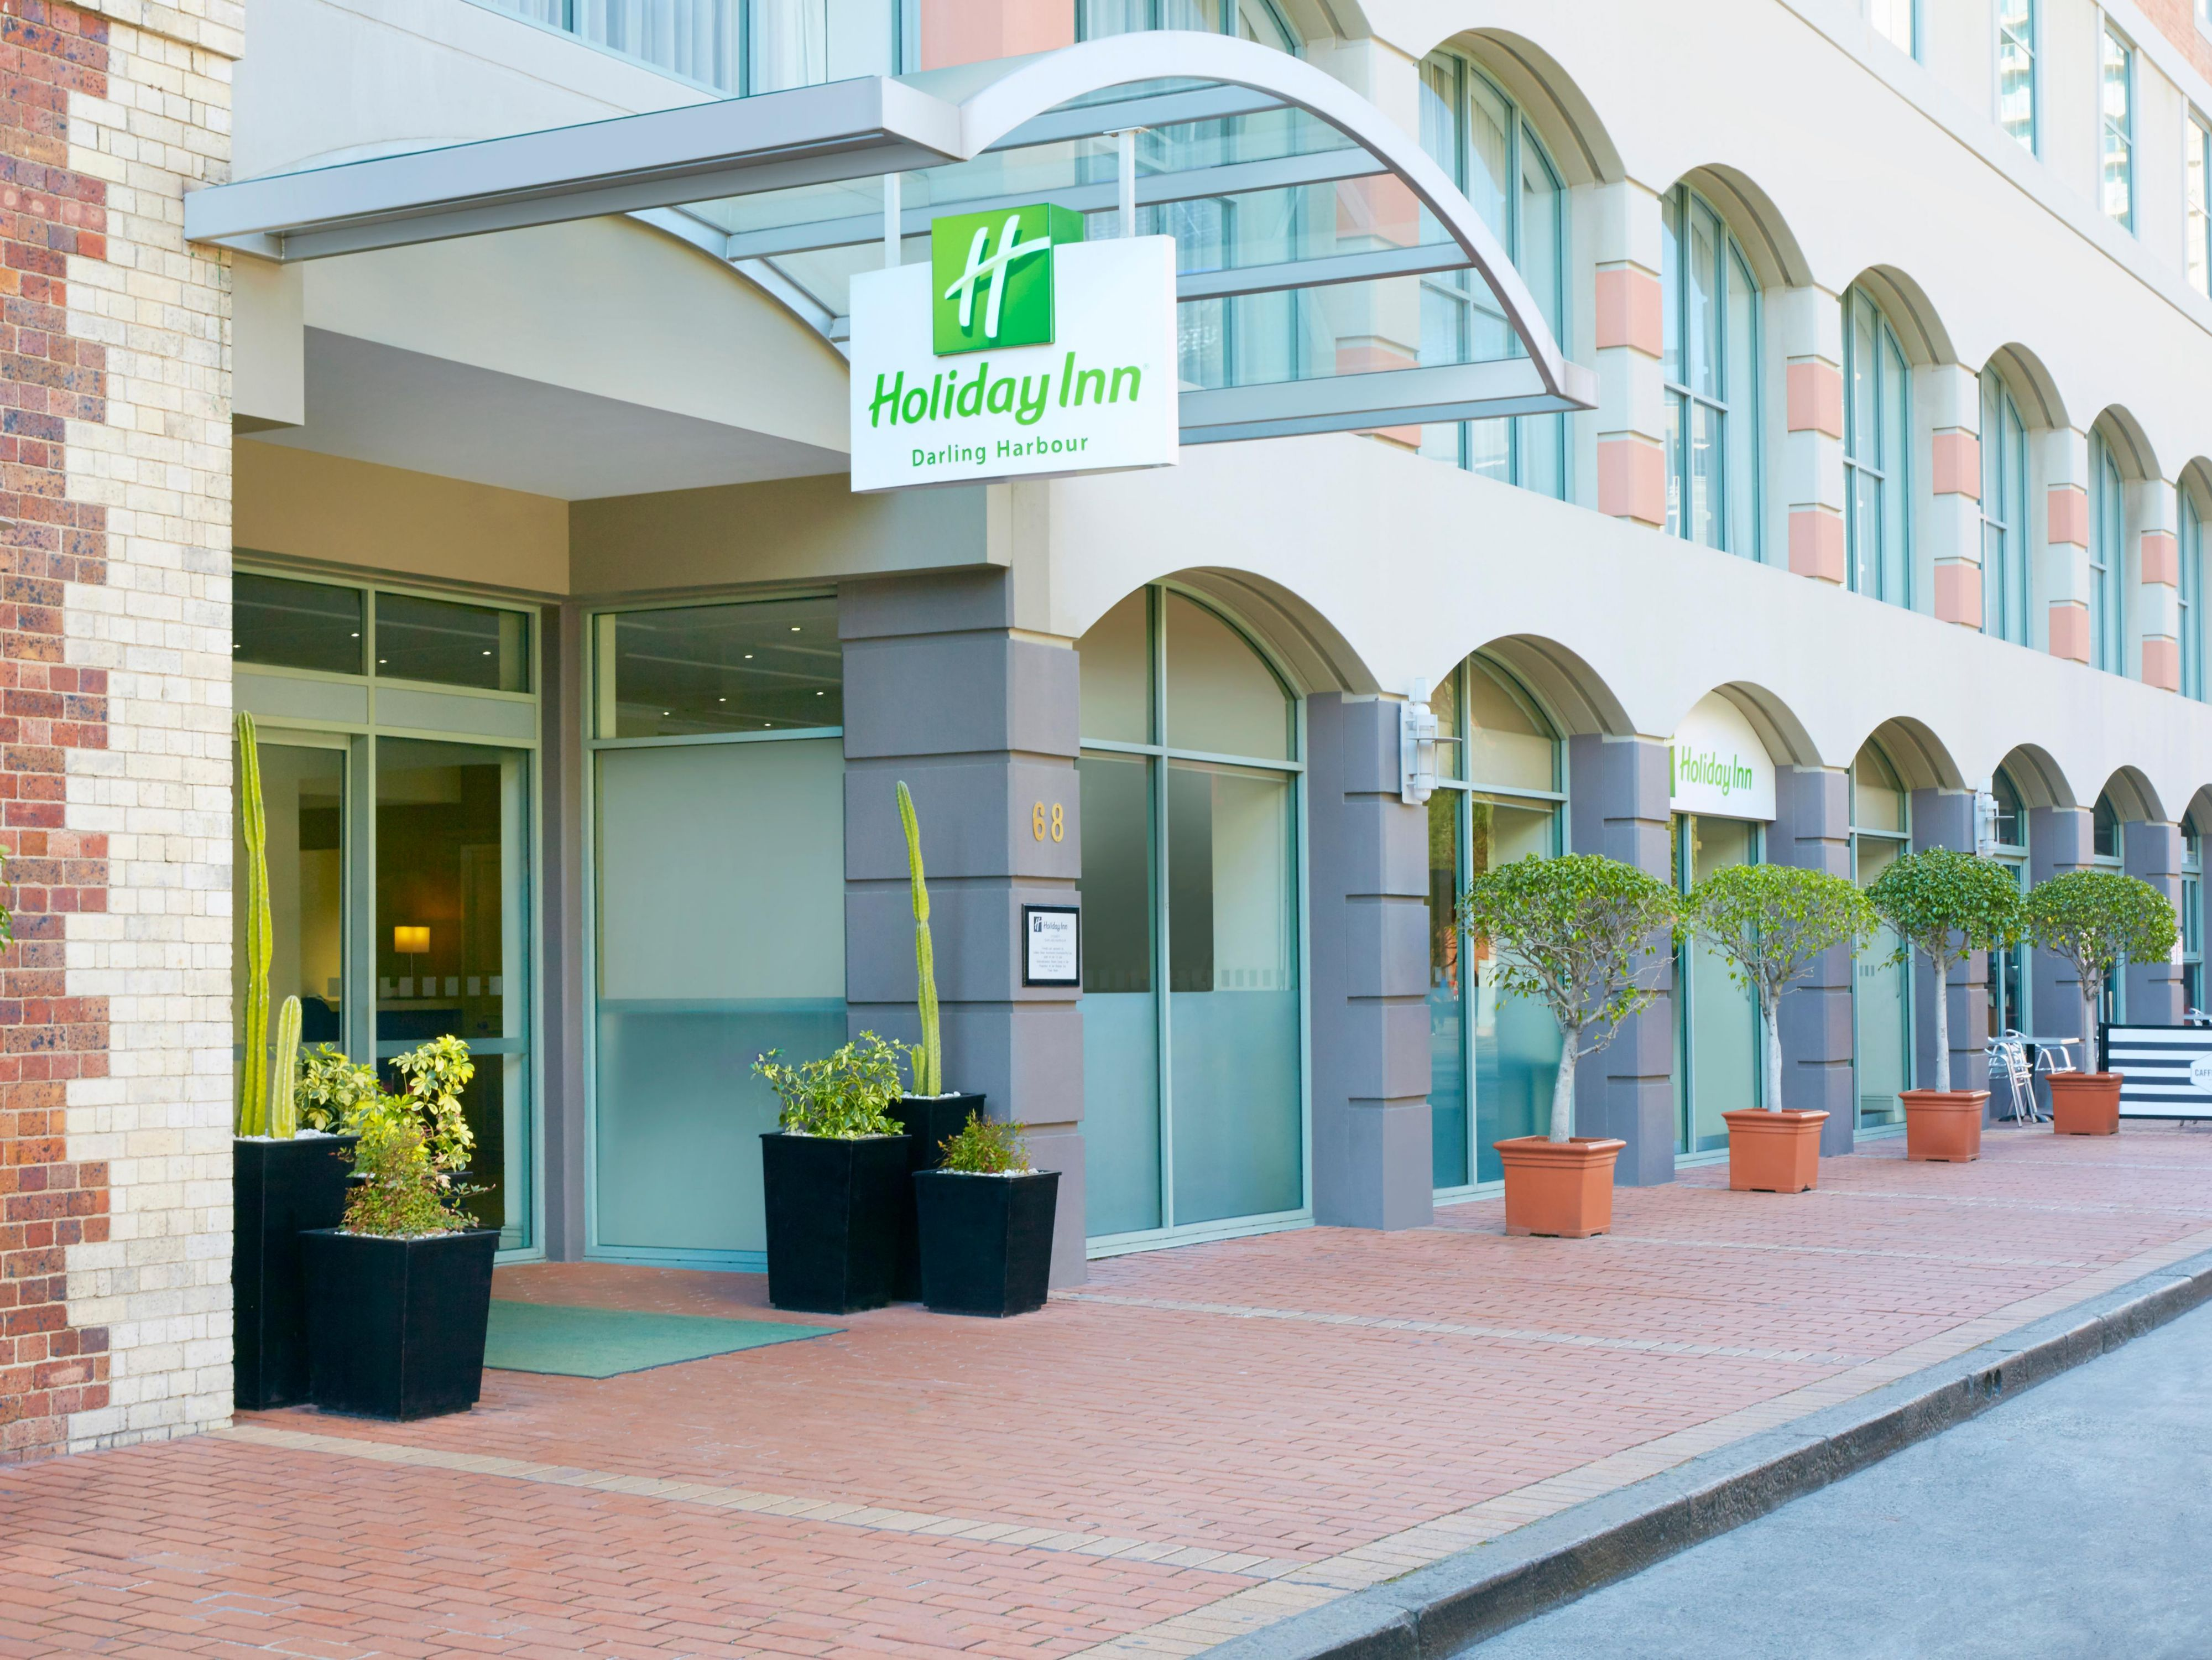 Hotel Exterior and Entrance